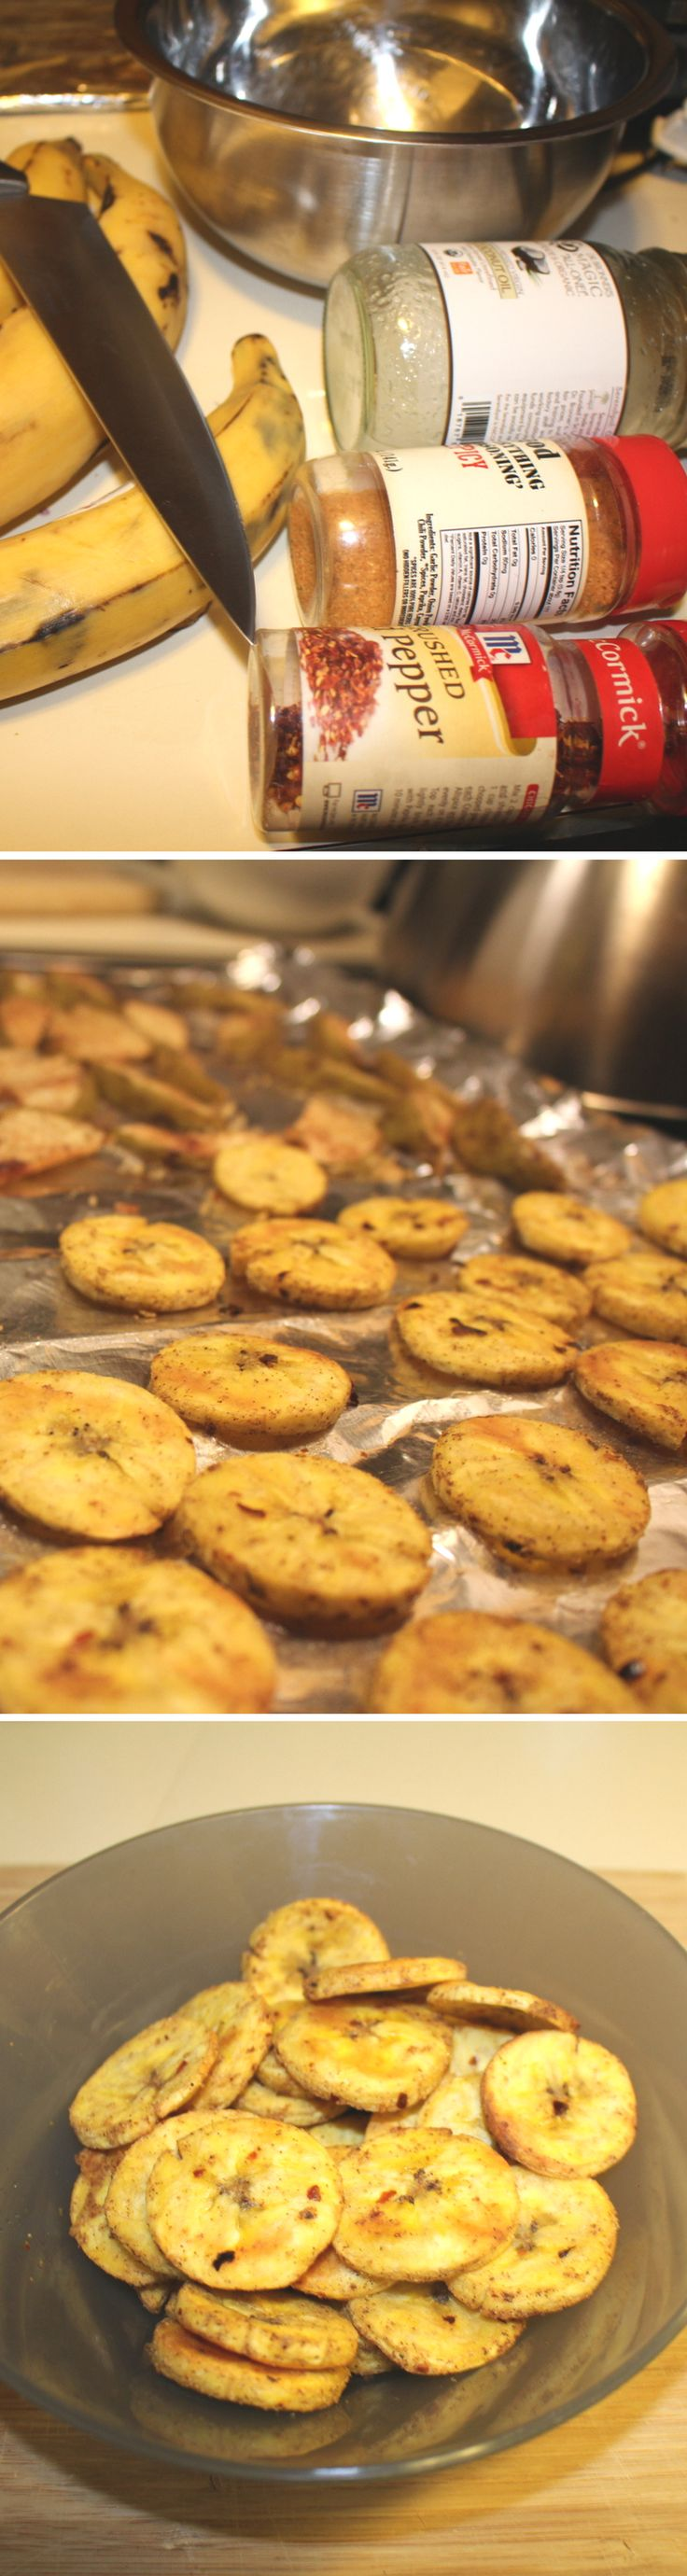 Enjoy this simple healthy recipe perfect for meal prep that is delicious! These baked plantain chips are very yummy.  meal prep / clean eating / health / wellness / women / healthy tips / snacks / plantains / recipe